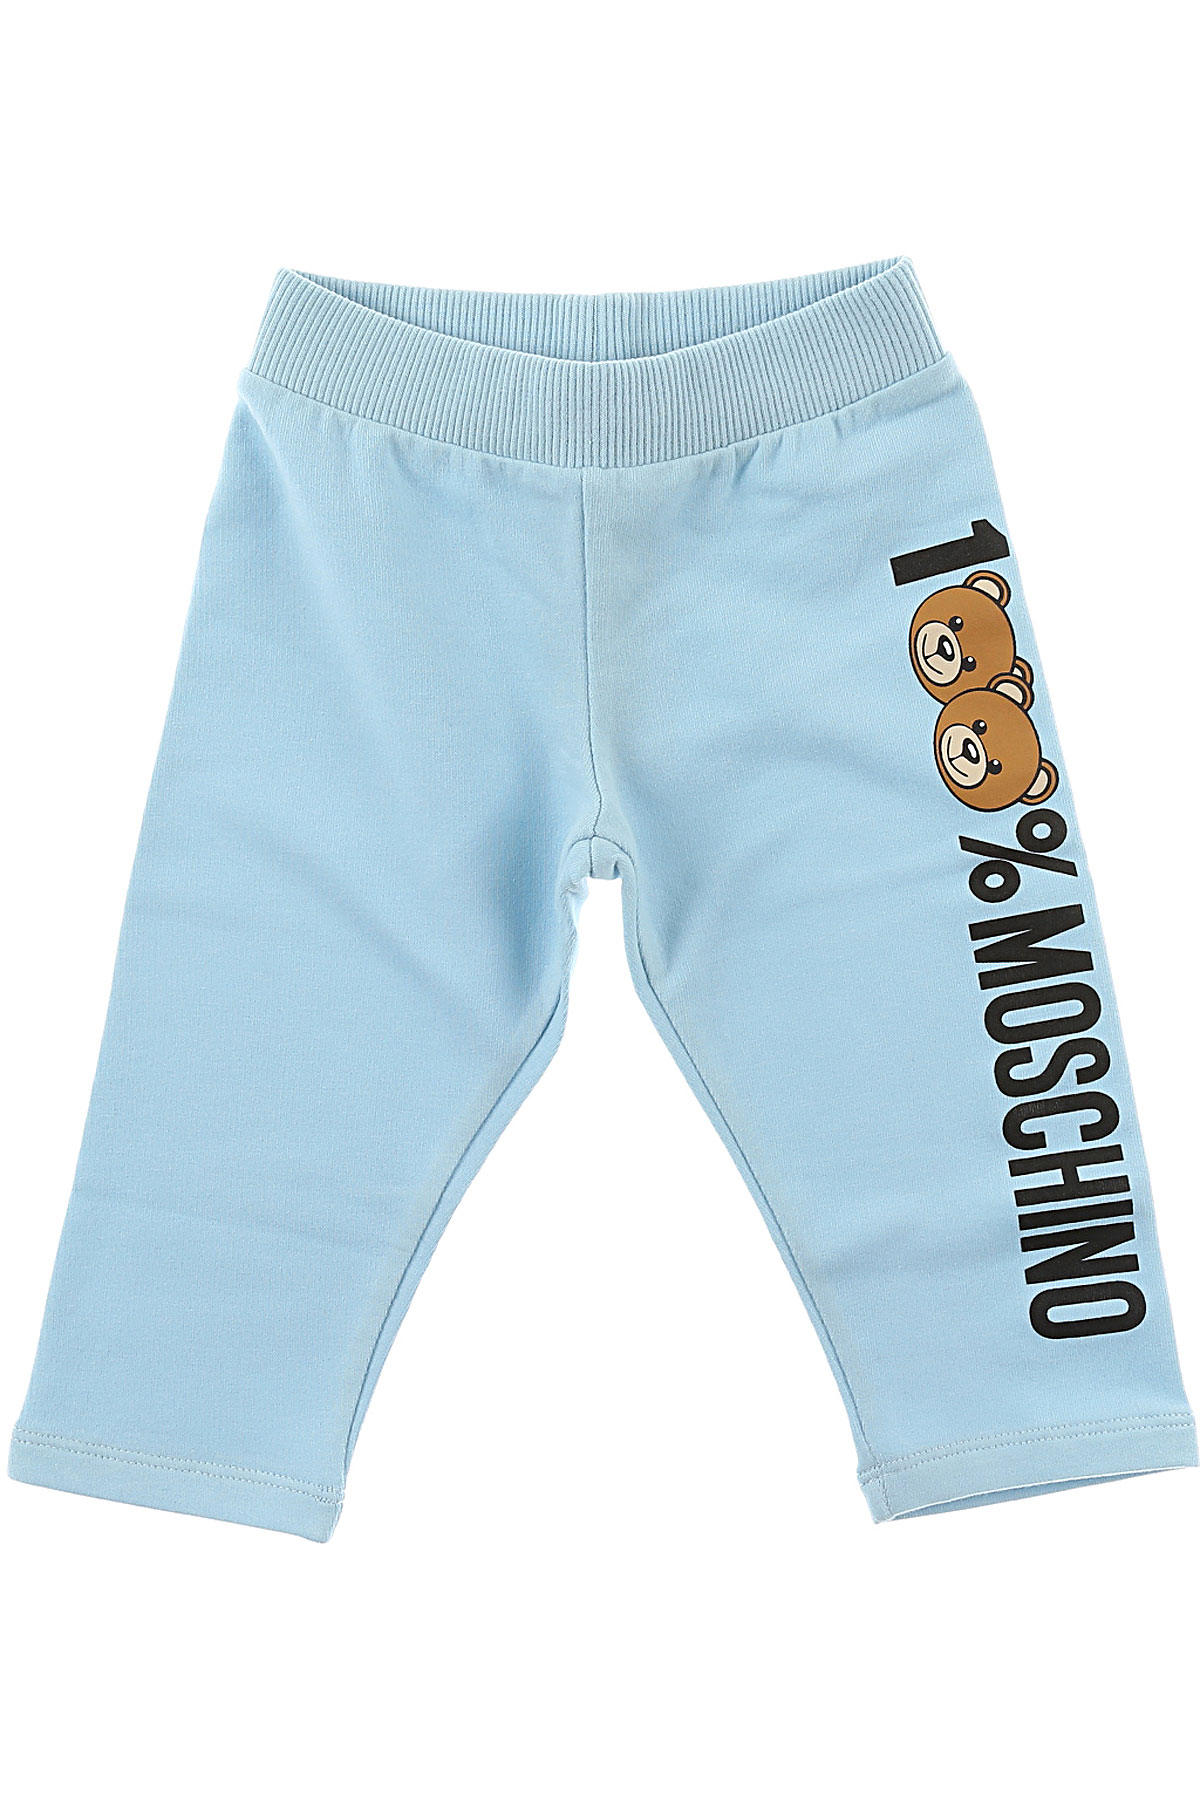 Image of Moschino Baby Sweatpants for Boys, celeste, Cotton, 2017, 24M 2Y 3Y 6M 9M